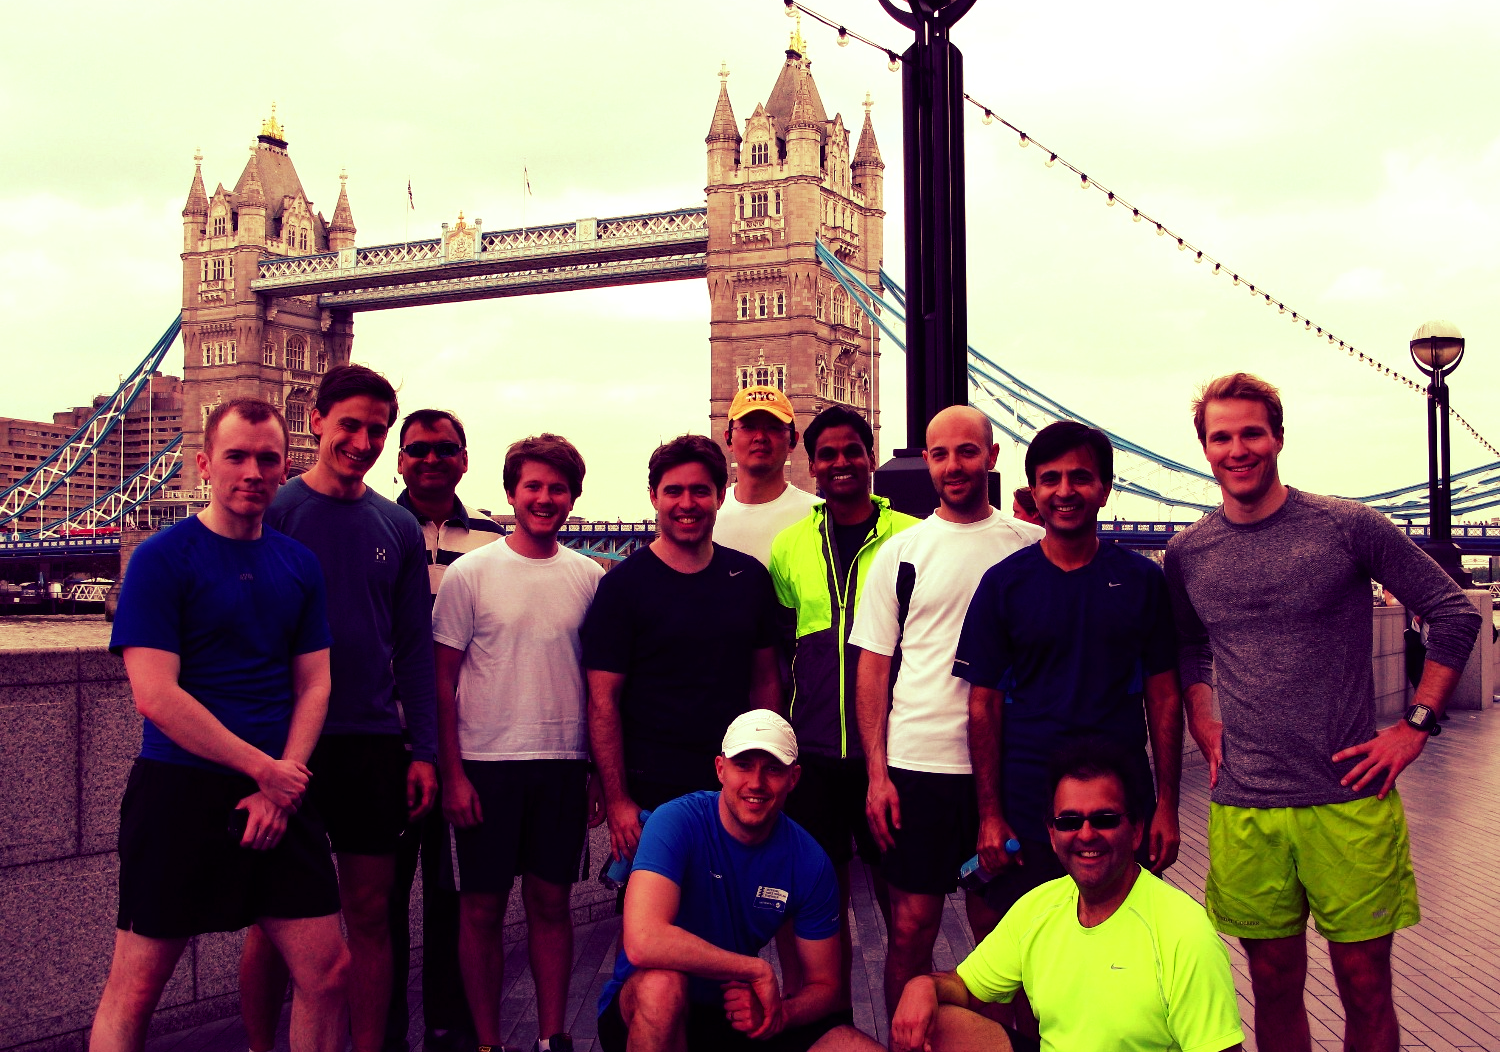 Fun running events in London